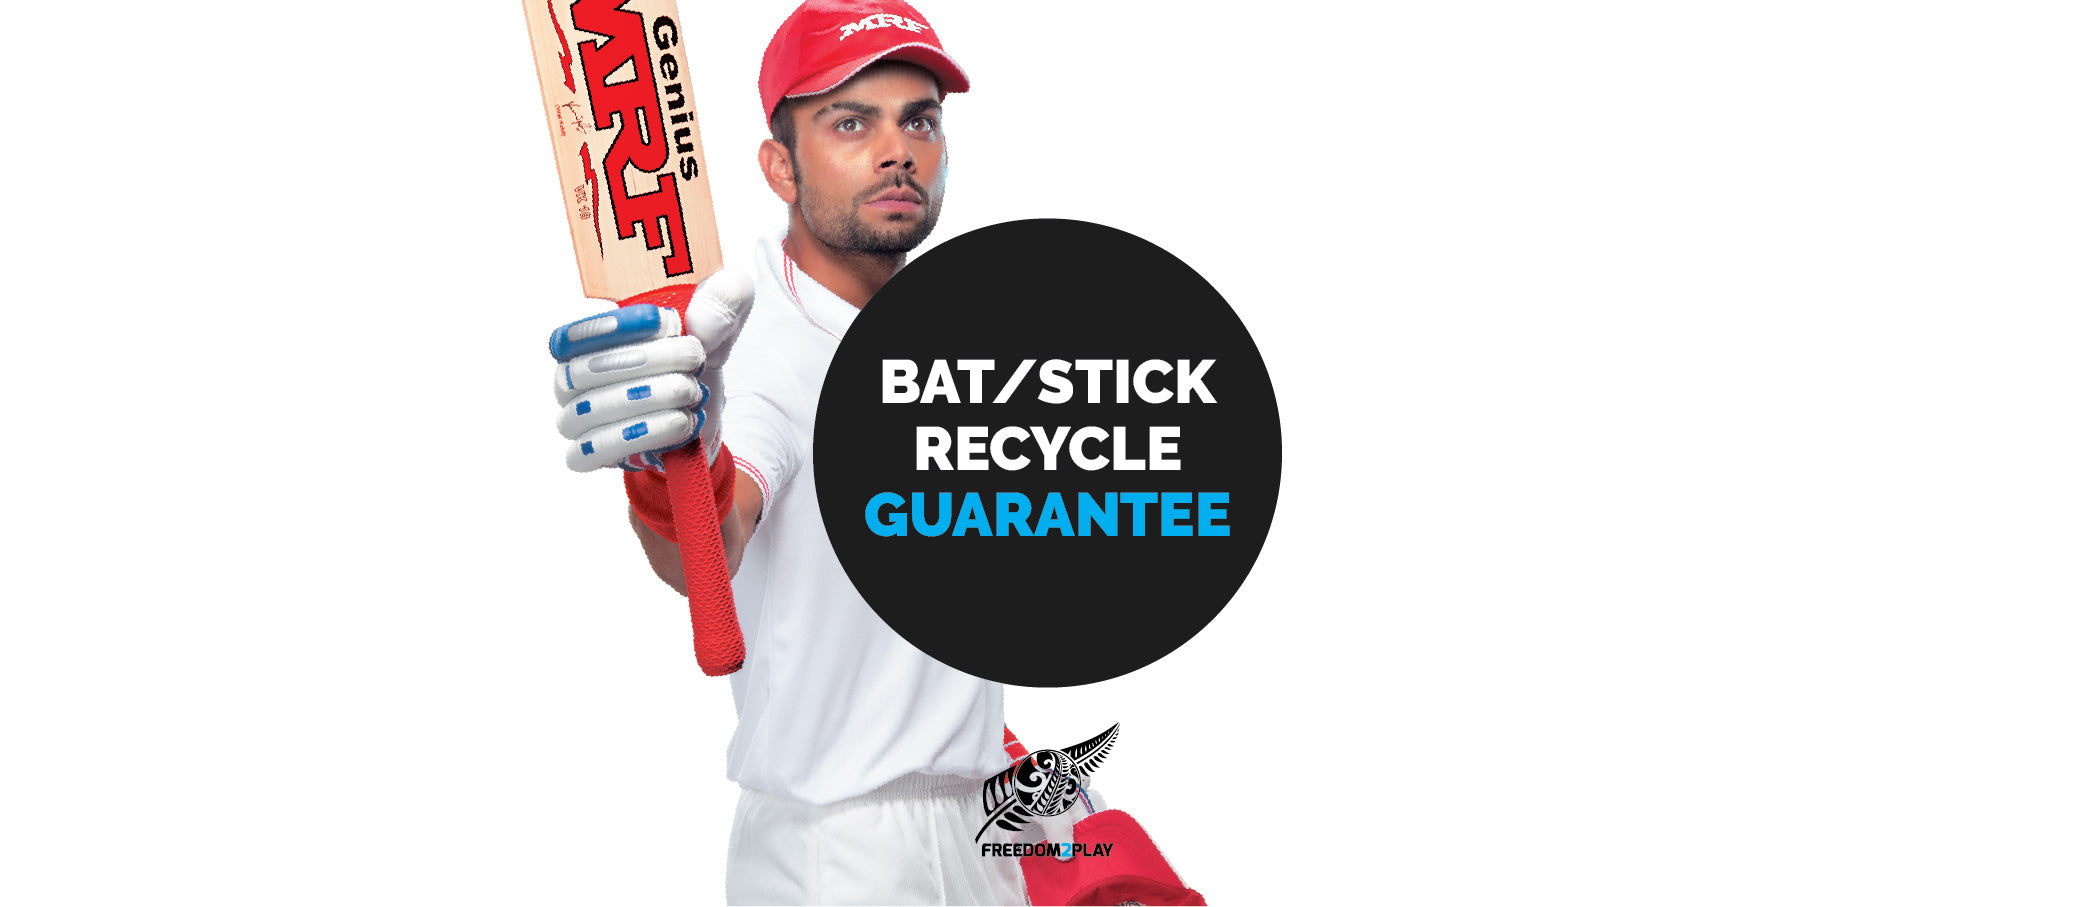 beginners cricket deal